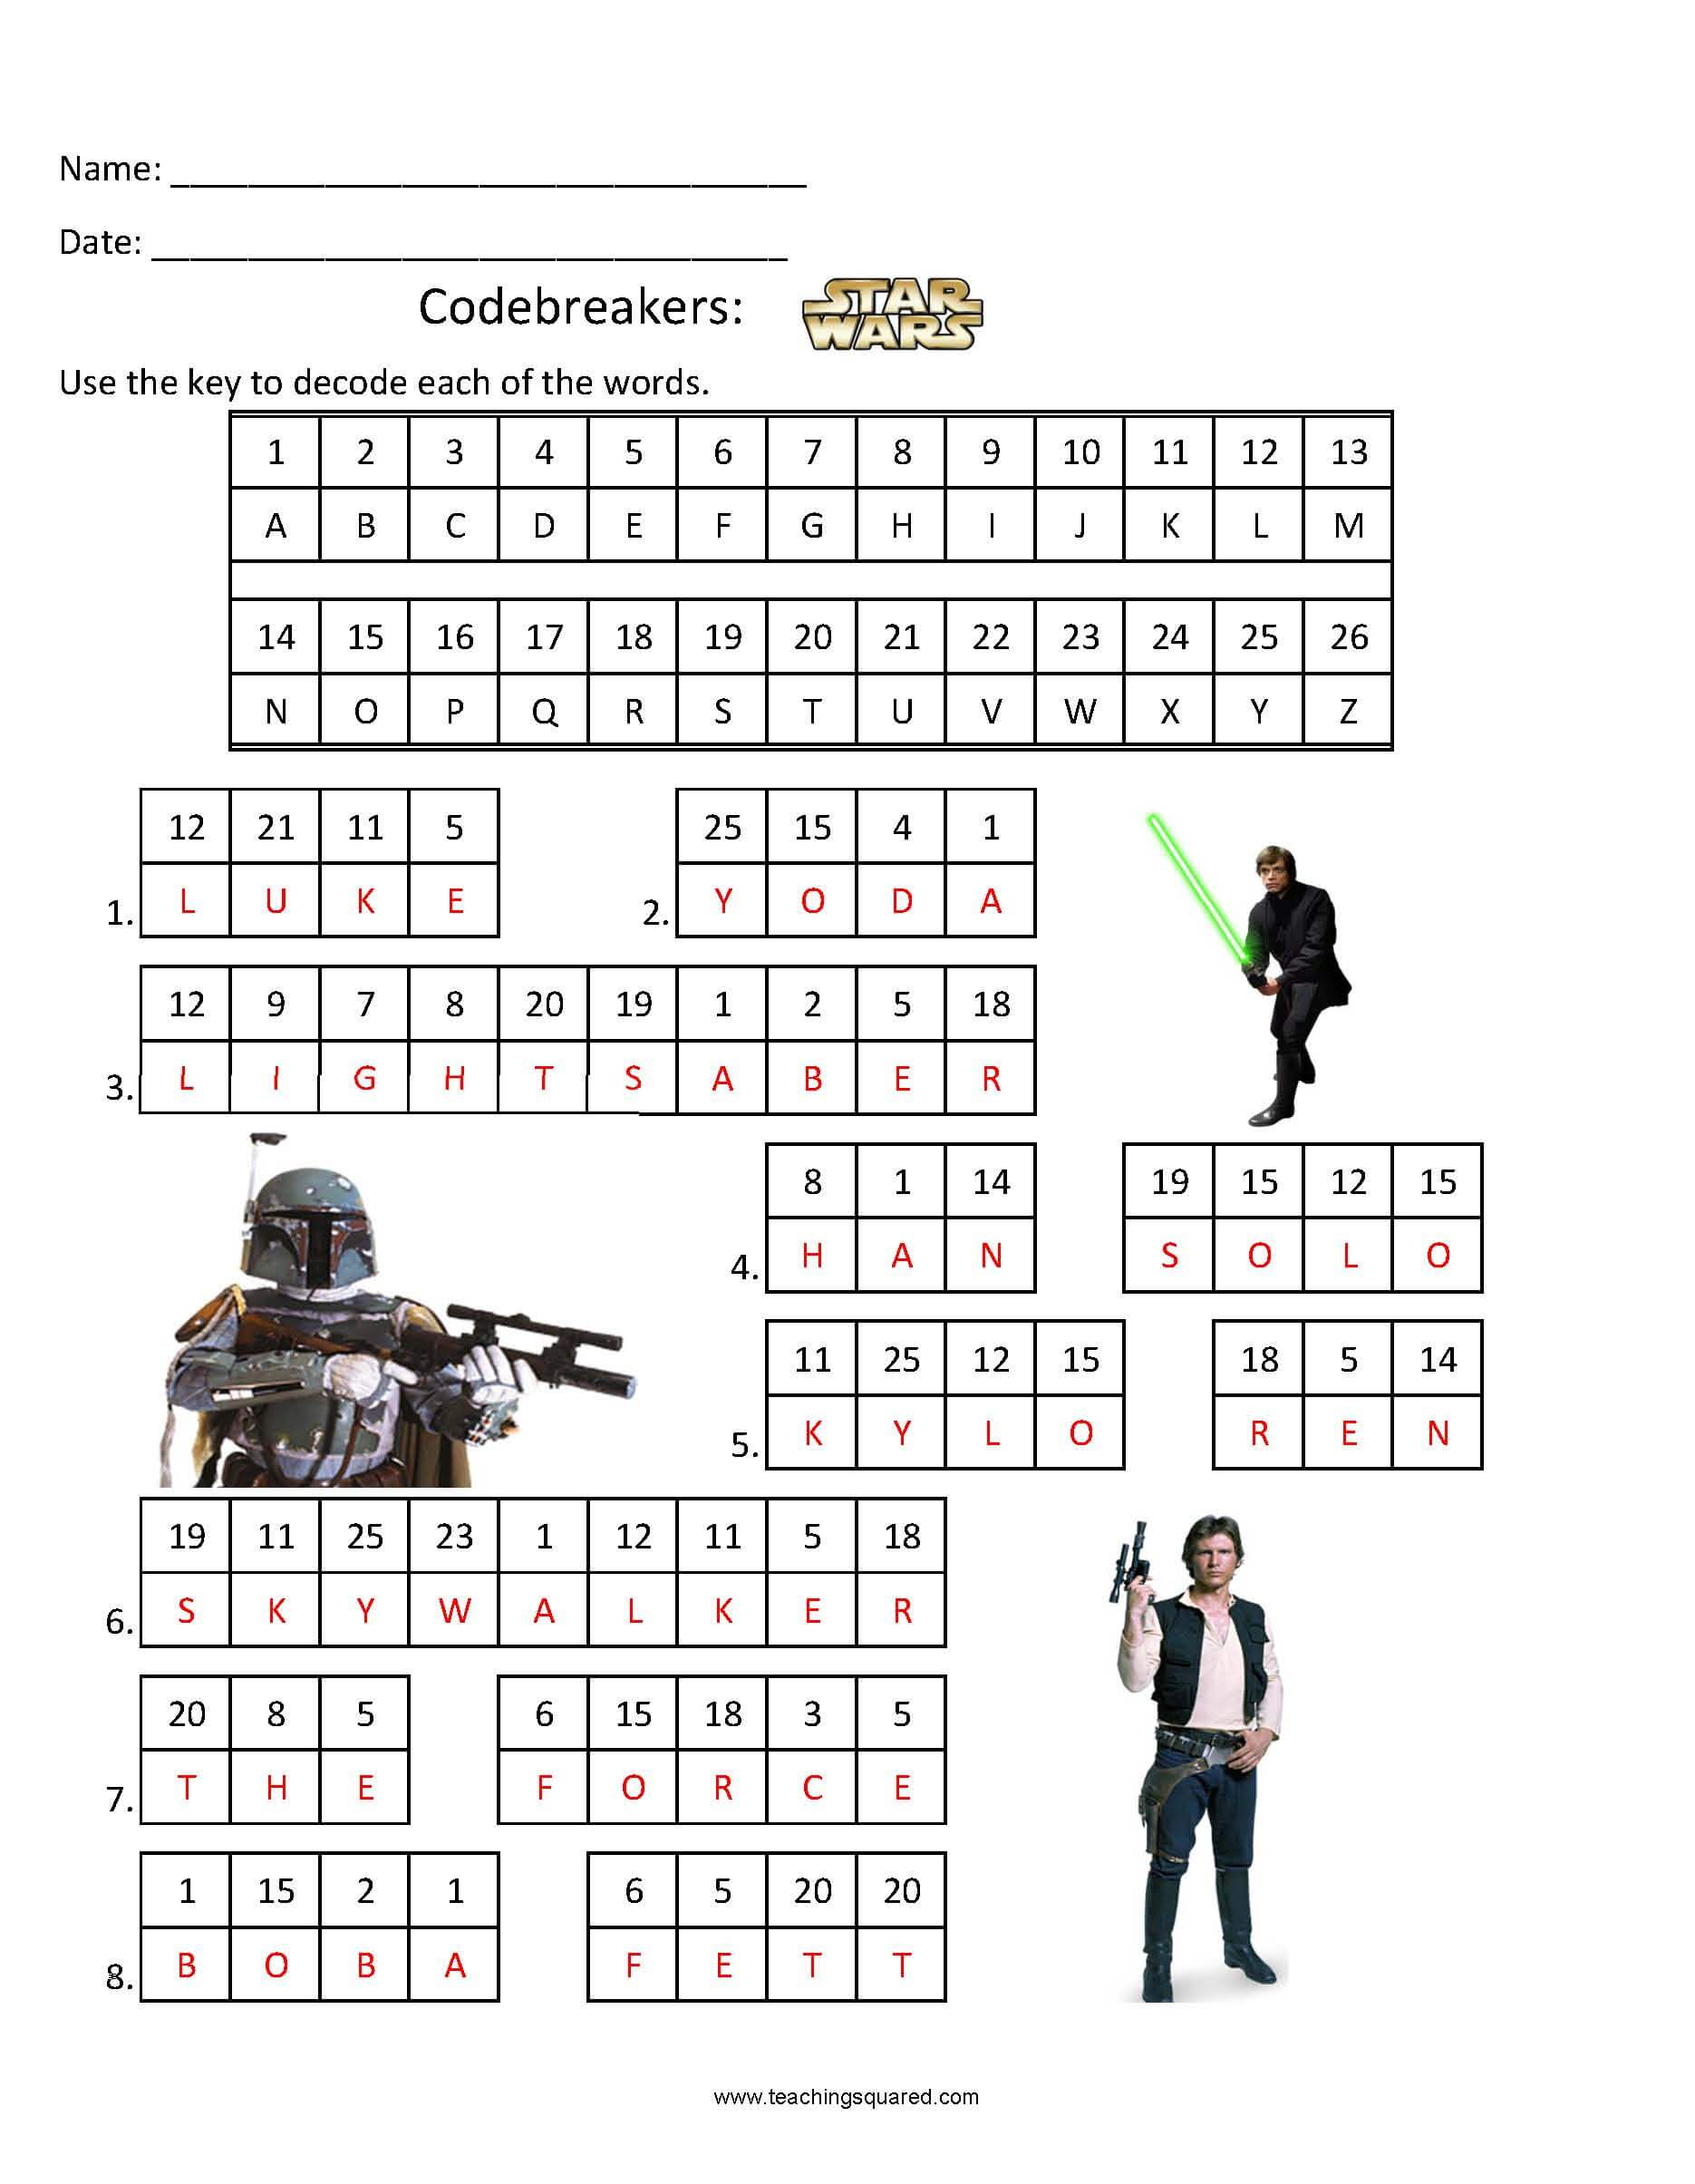 photo relating to Star Wars Crossword Puzzles Printable known as Codebreakers- Star Wars 1 - Coaching Squared